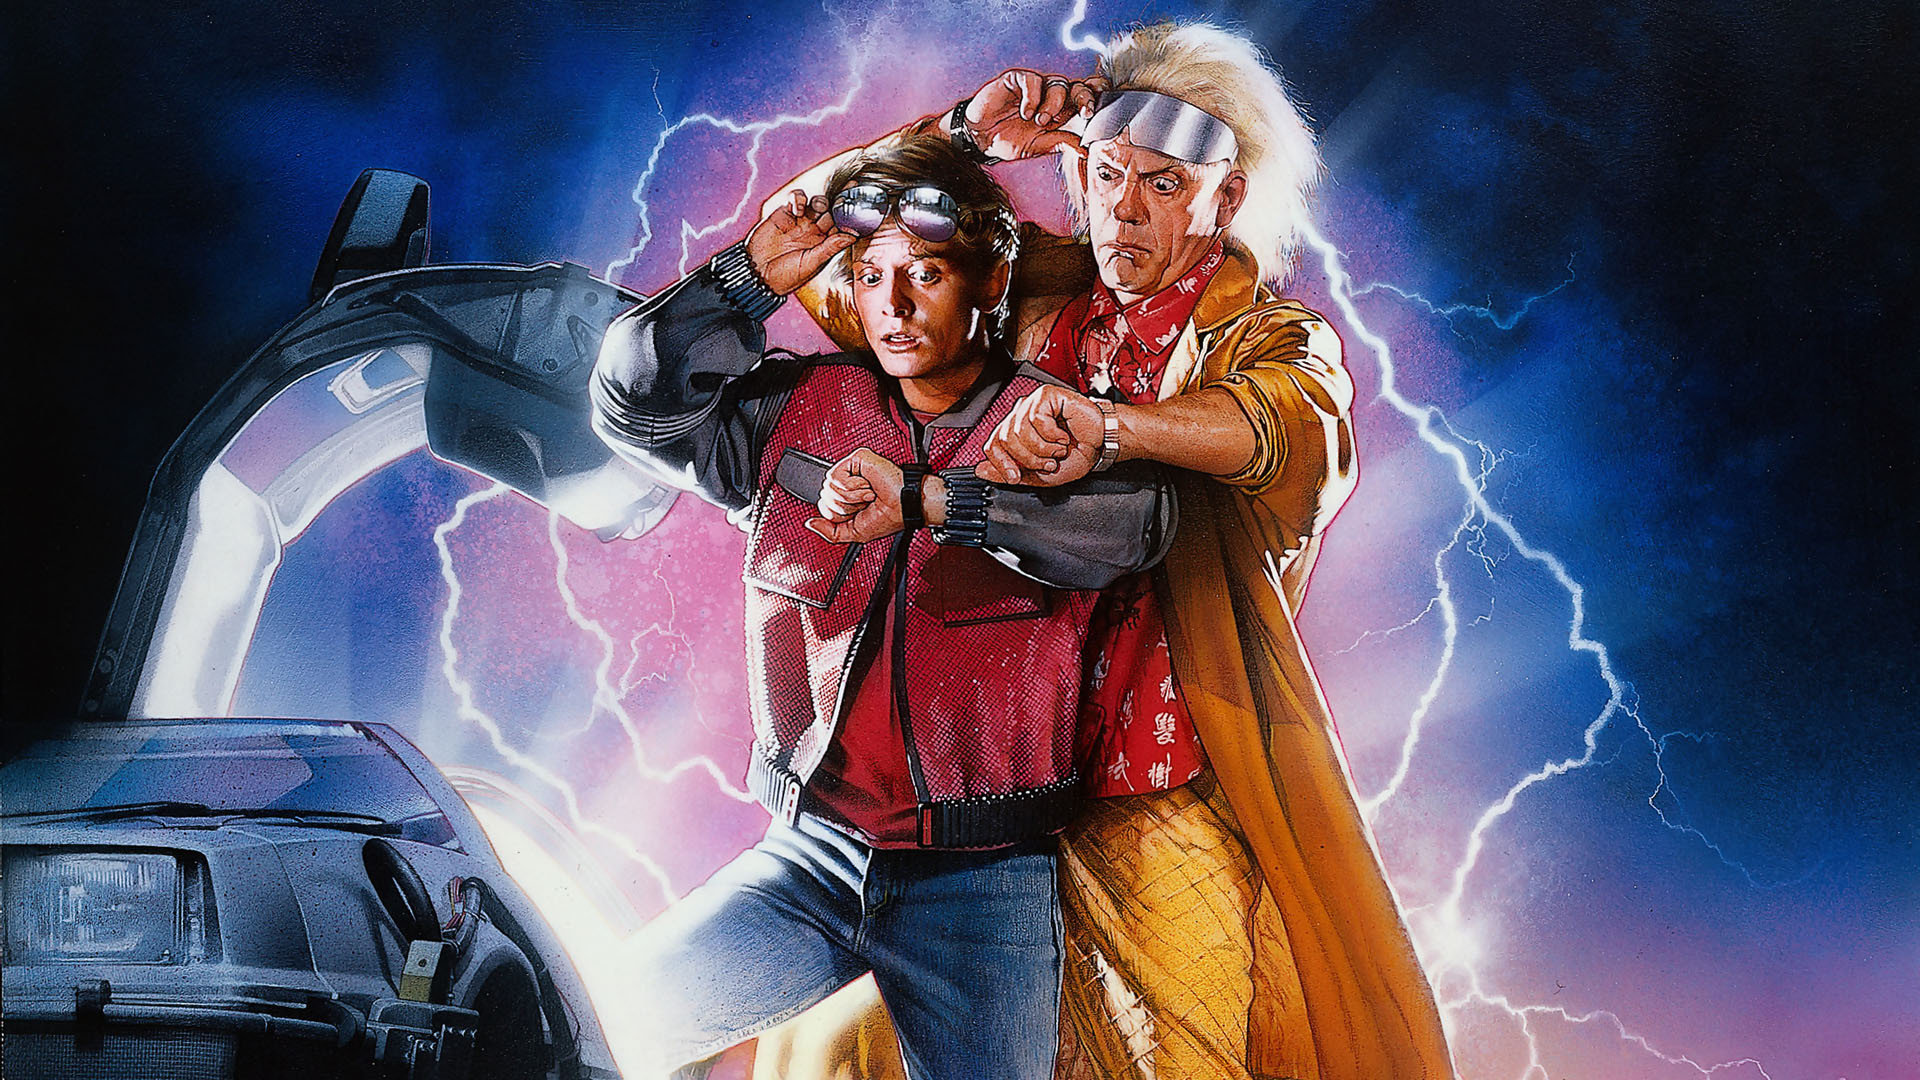 Back To The Future Wallpapers 1920x1080 Full Hd 1080p